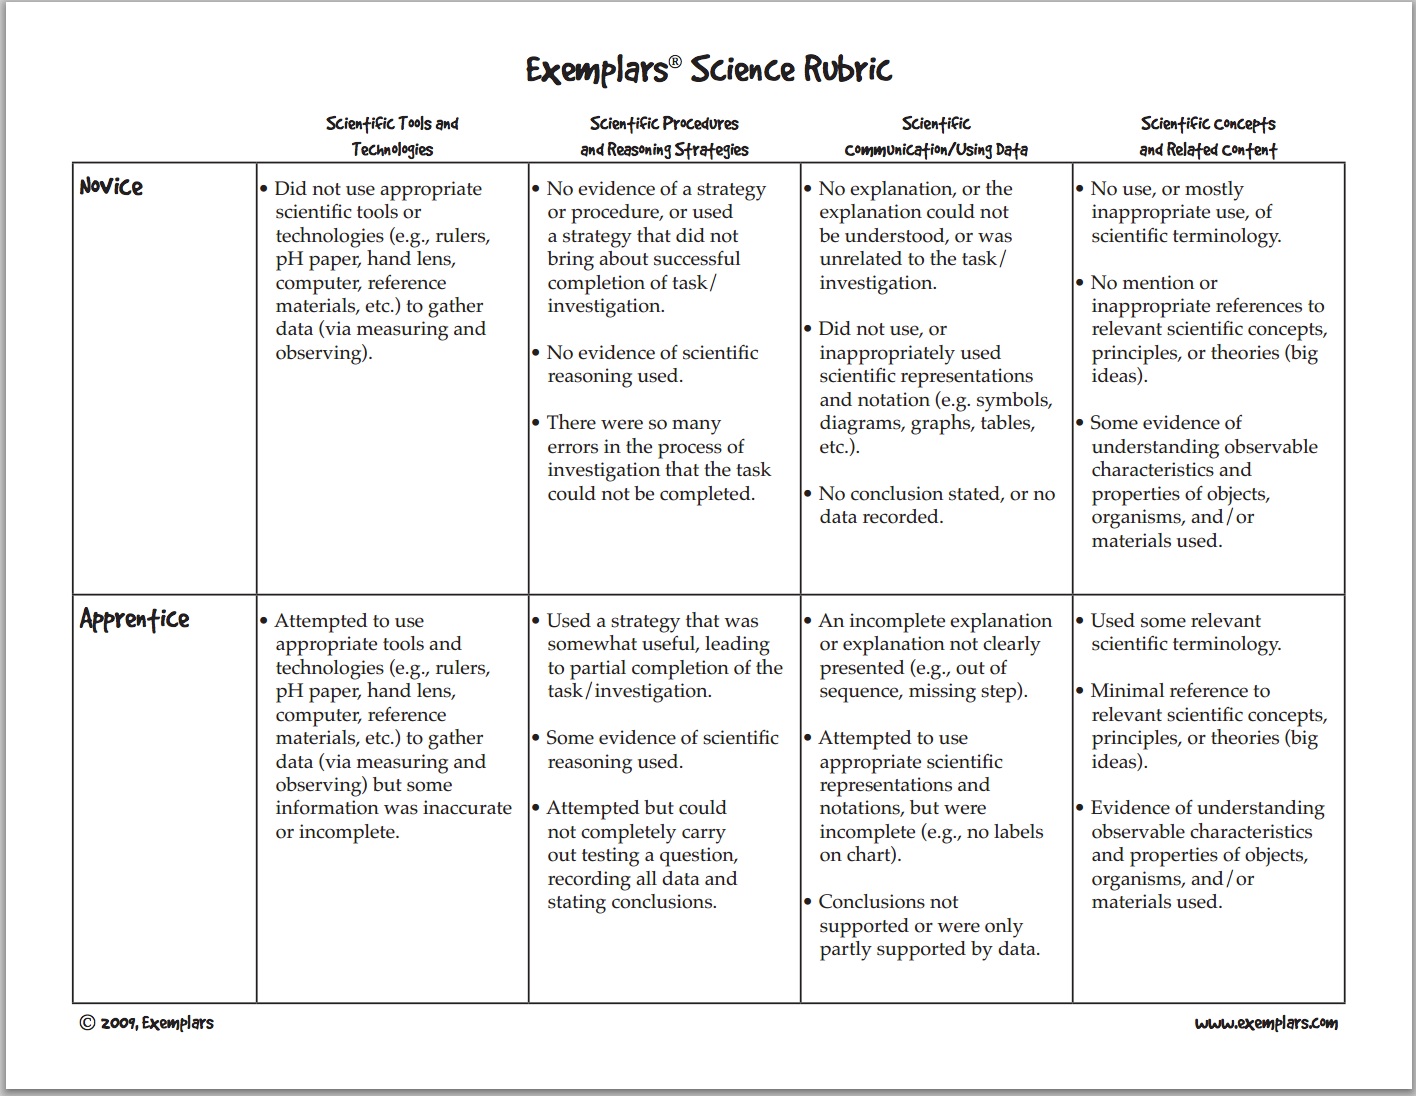 A Must Have Rubric For Science Teachers